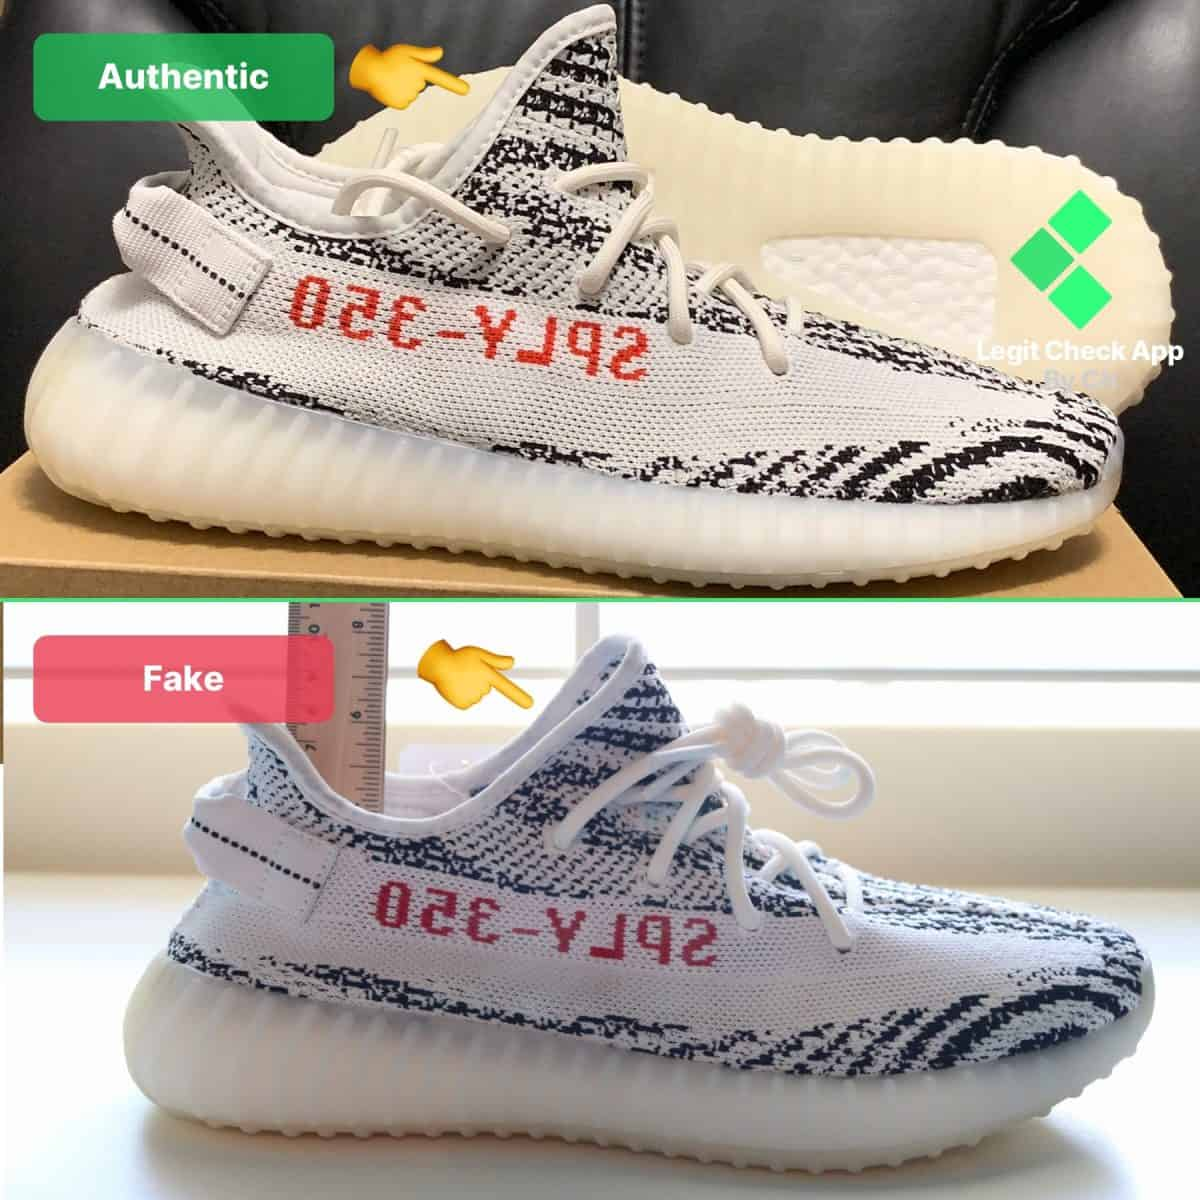 detailed look b1fdc e7bc6 Yeezy Boost 350 V2 Zebra Fake Vs Real Legit Check Guide